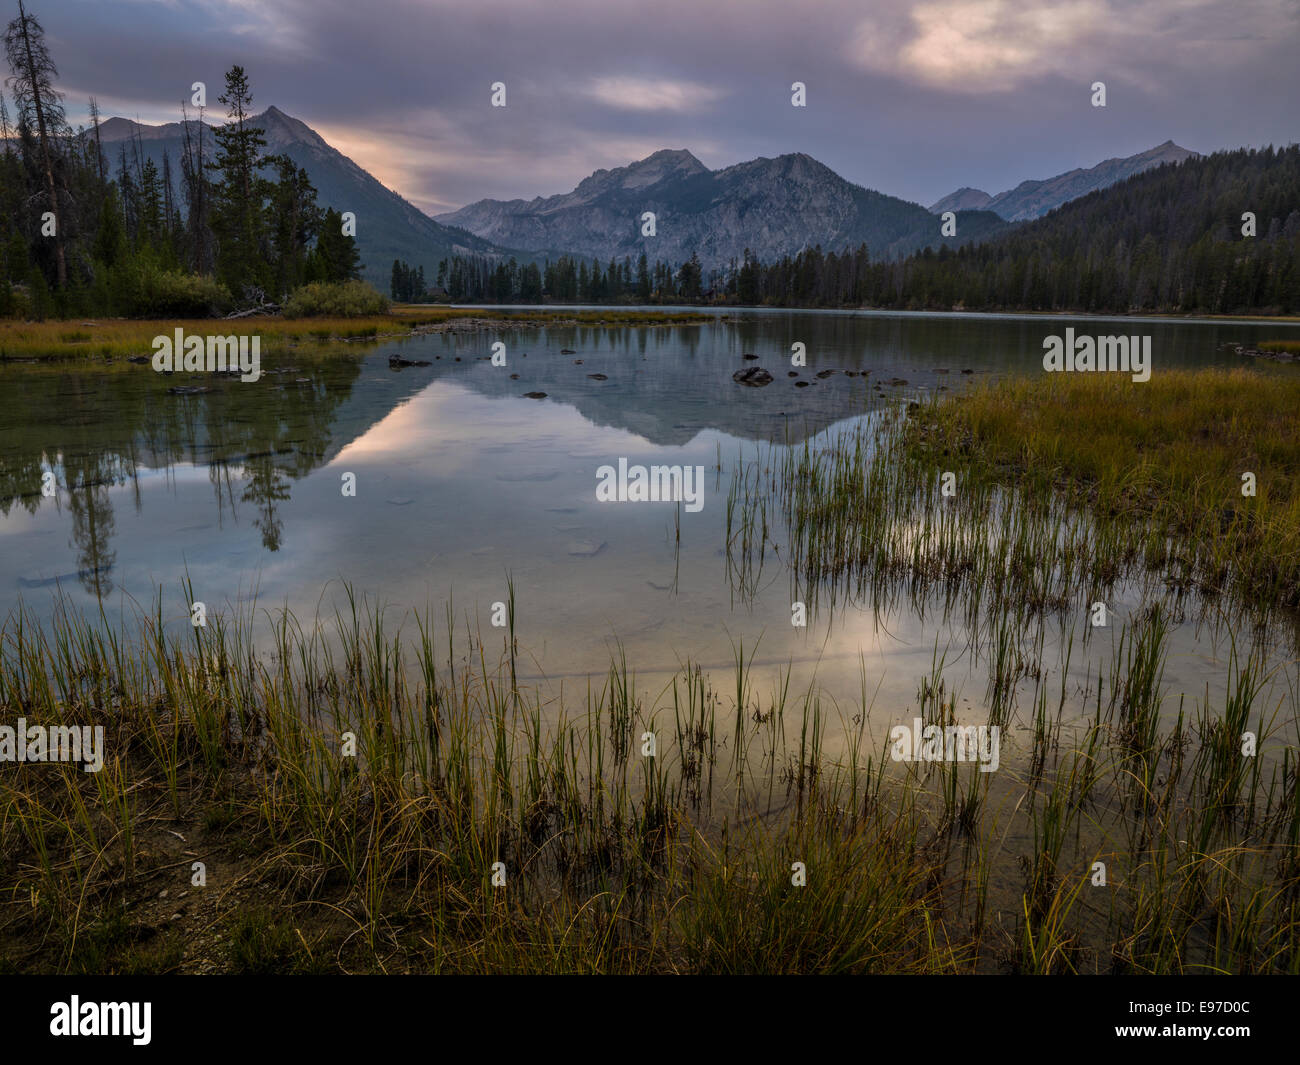 Cloulds over Petit Lake in the Sawtooth Wilderness of Central Idaho. - Stock Image